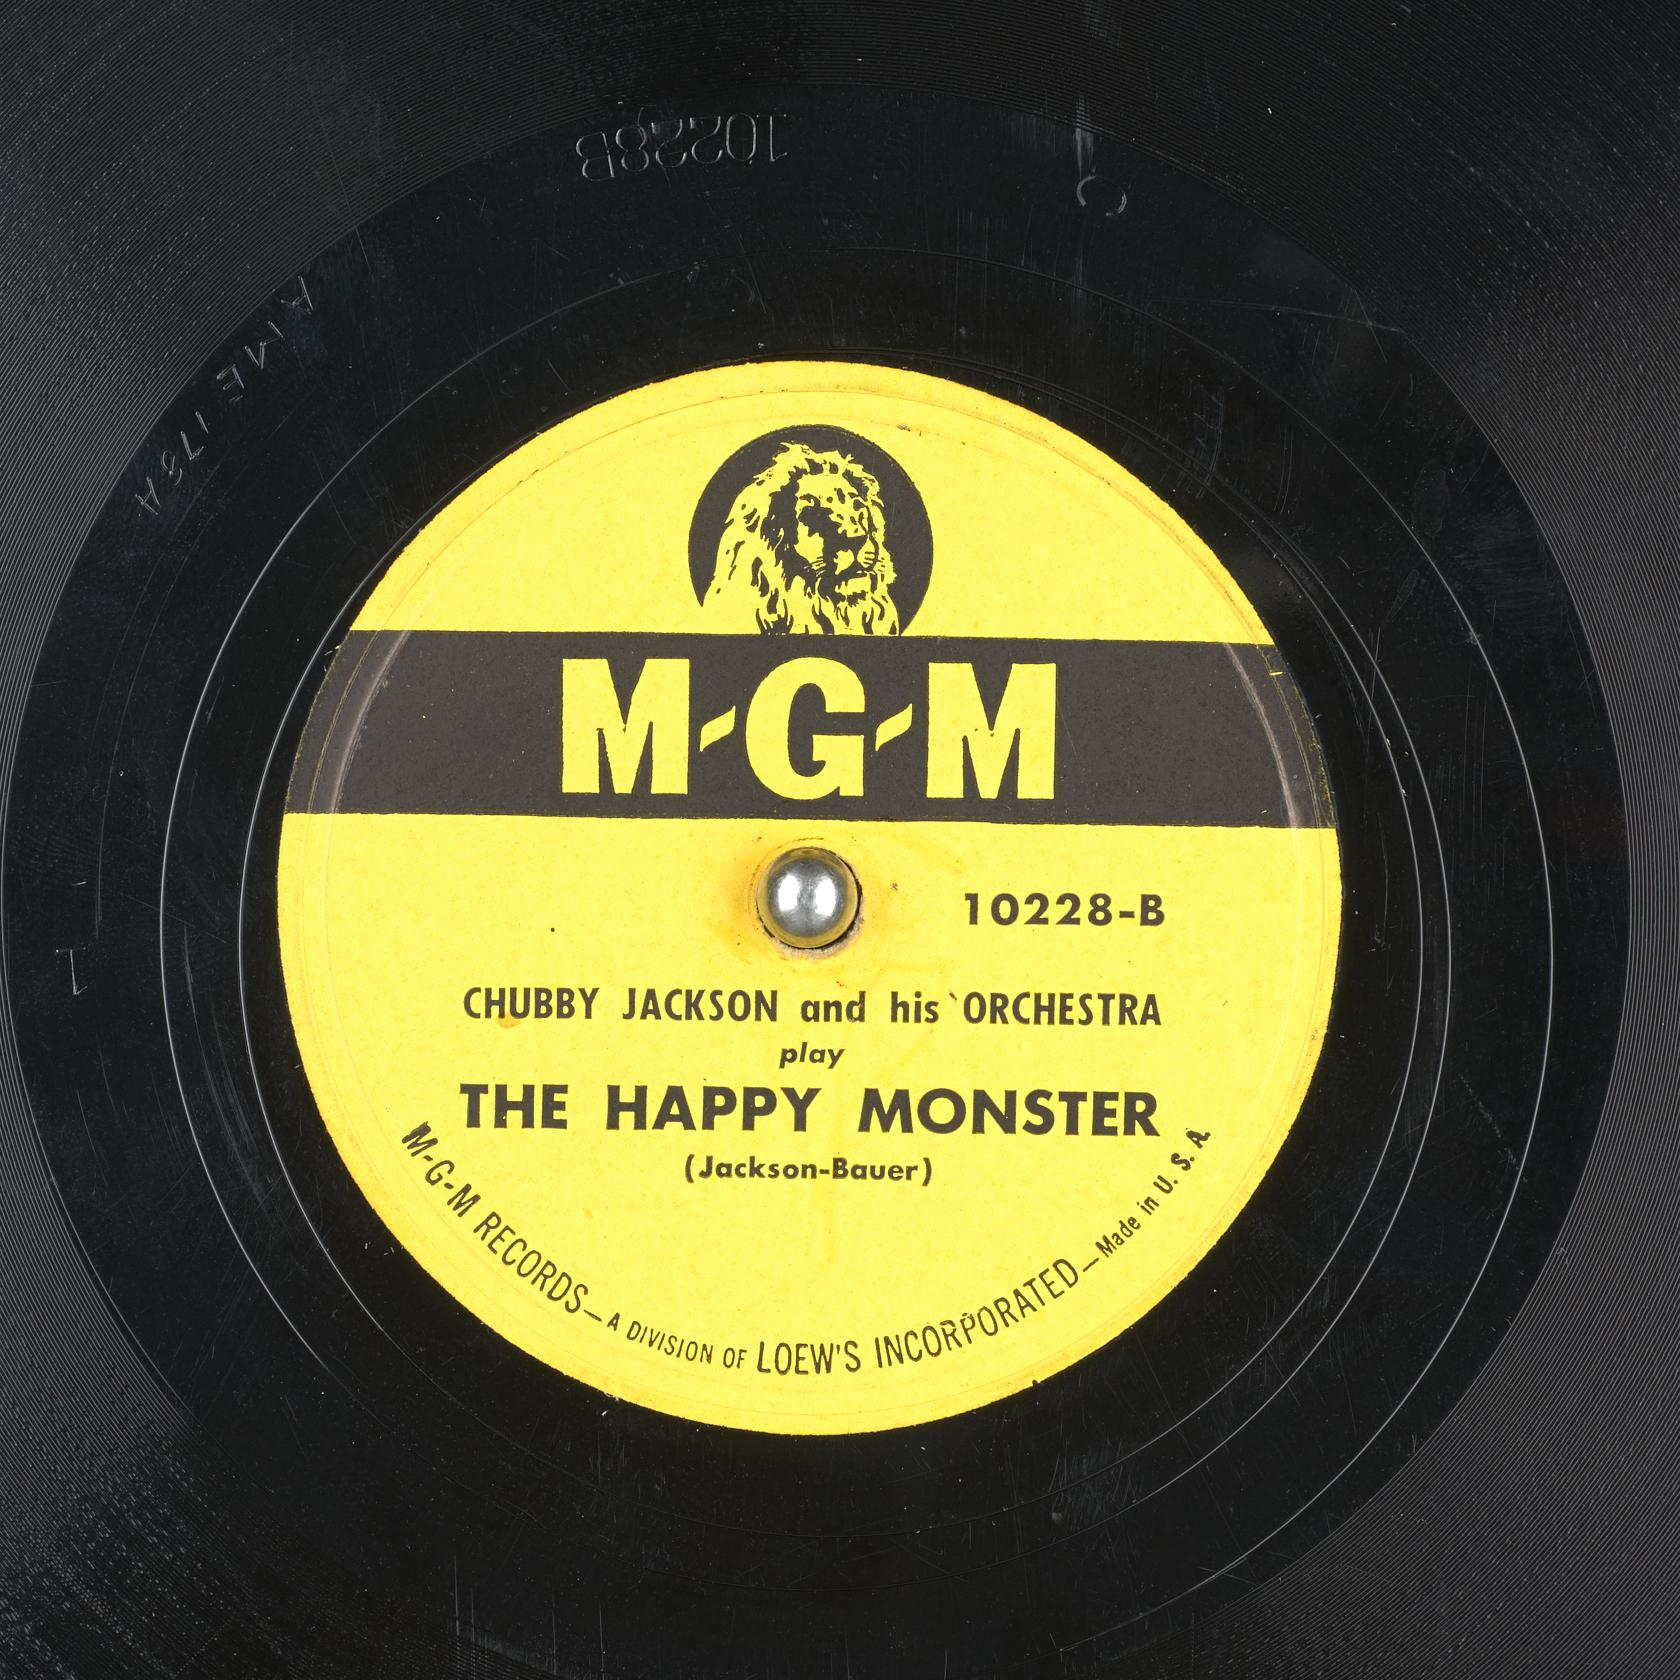 The Happy Monster